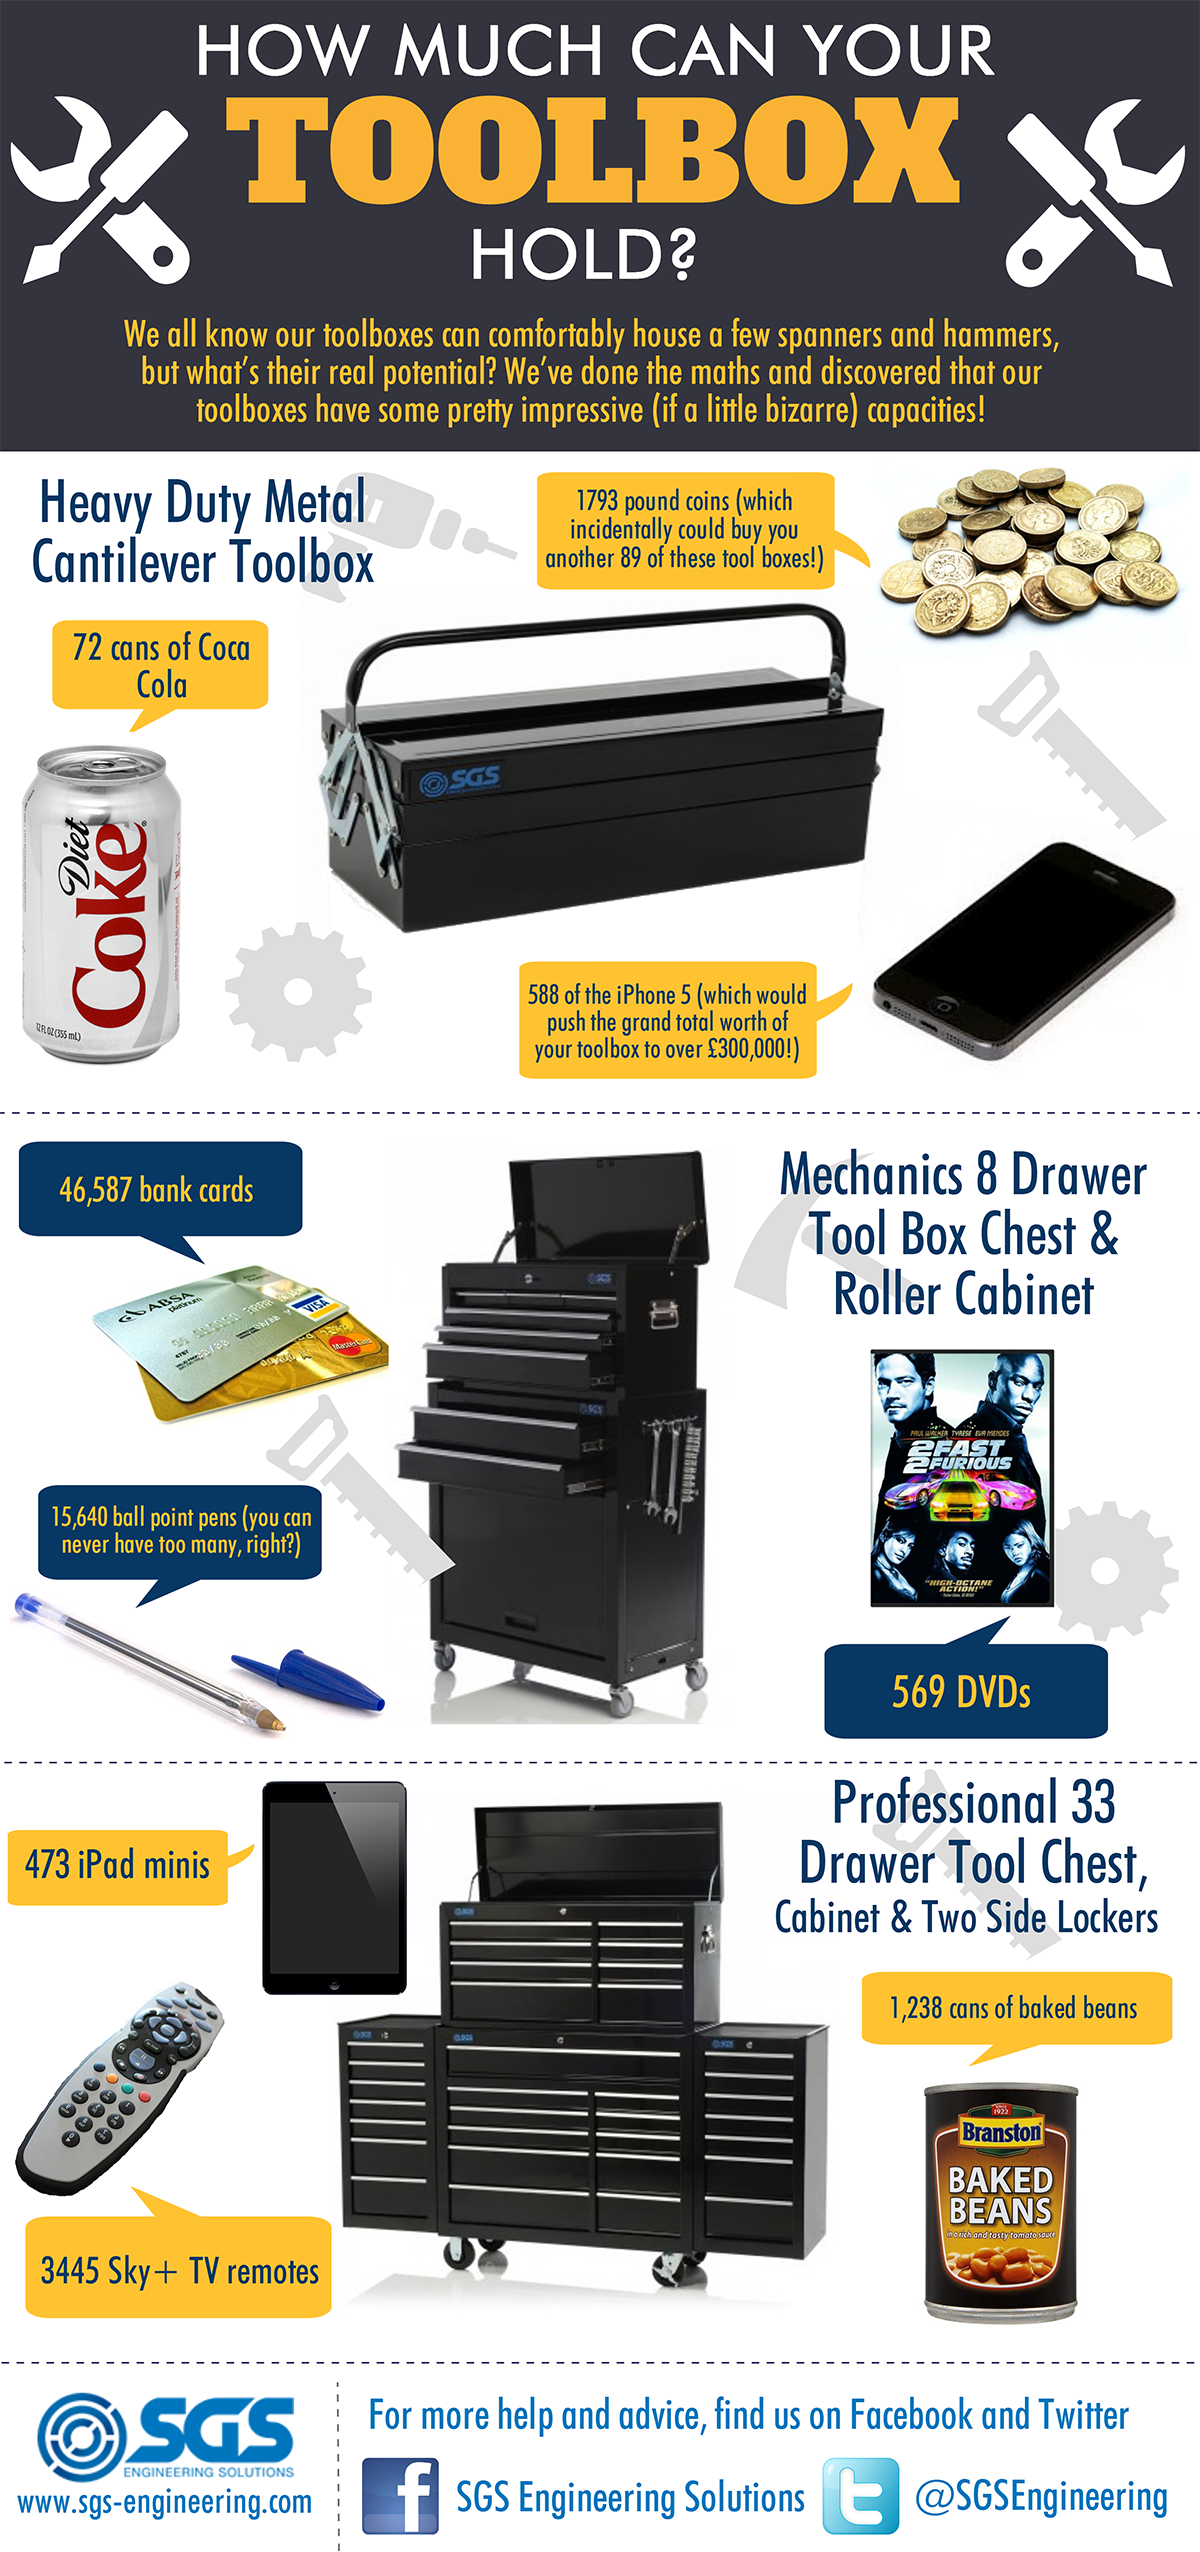 How-Much-Can-Your-Toolbox-Hold